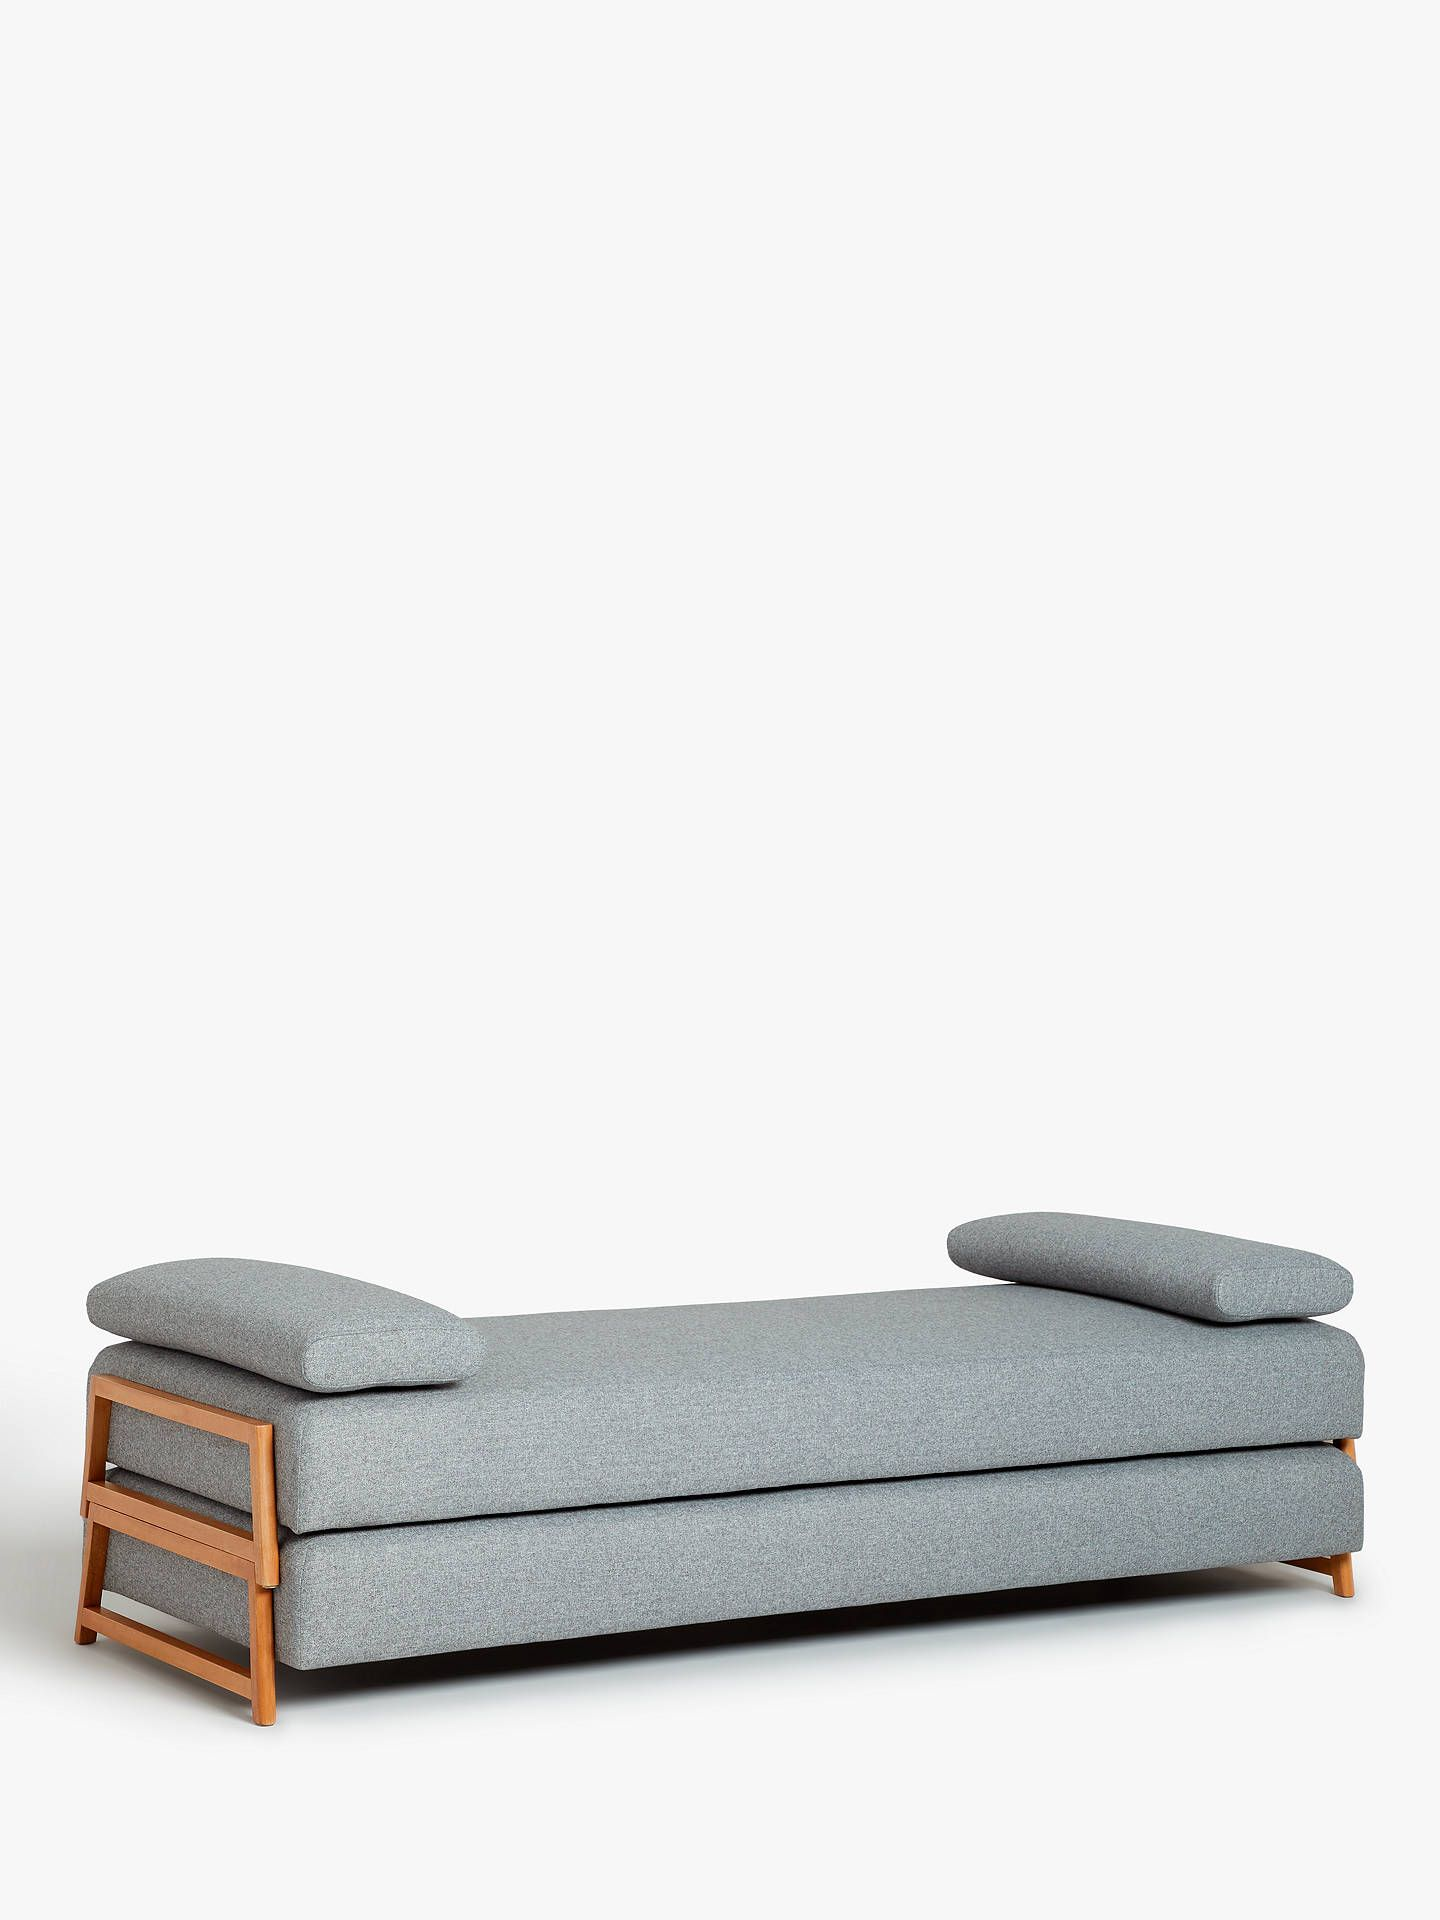 John Lewis & Partners Duplet Daybed Small chair for